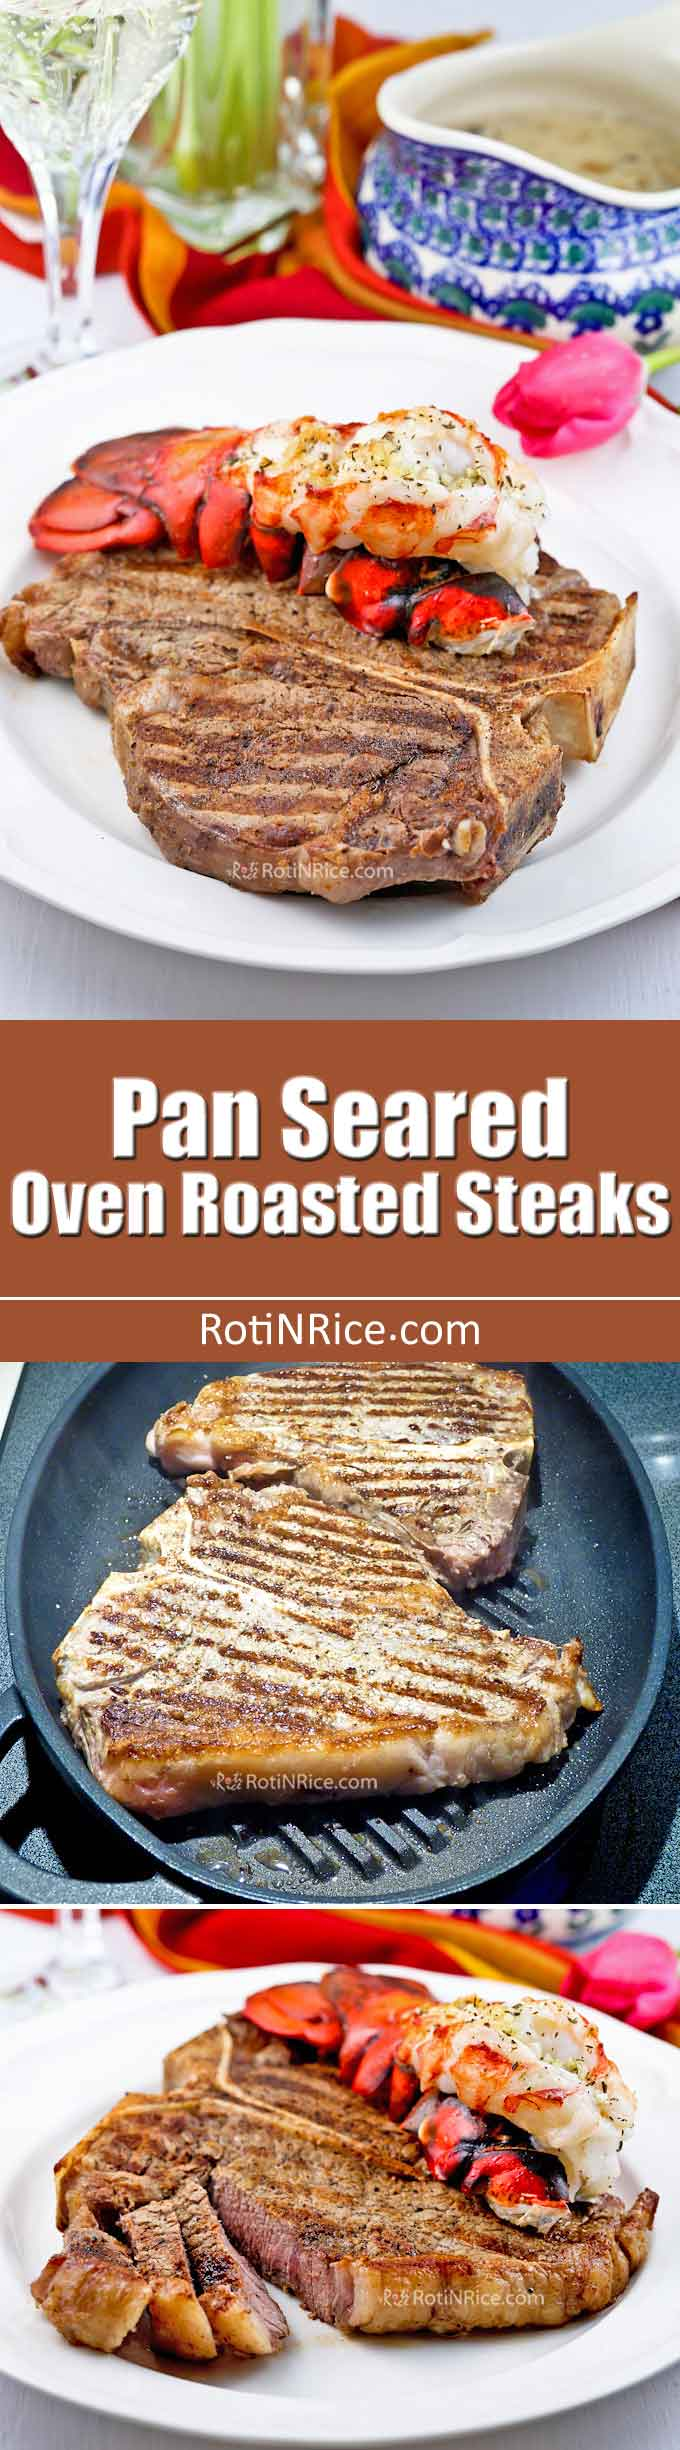 Enjoy Pan Seared Oven Roasted Steaks with grilled marks any time of the year even when it is cold outside. Takes only minutes to prepare in the comfort of your kitchen. | RotiNRice.com